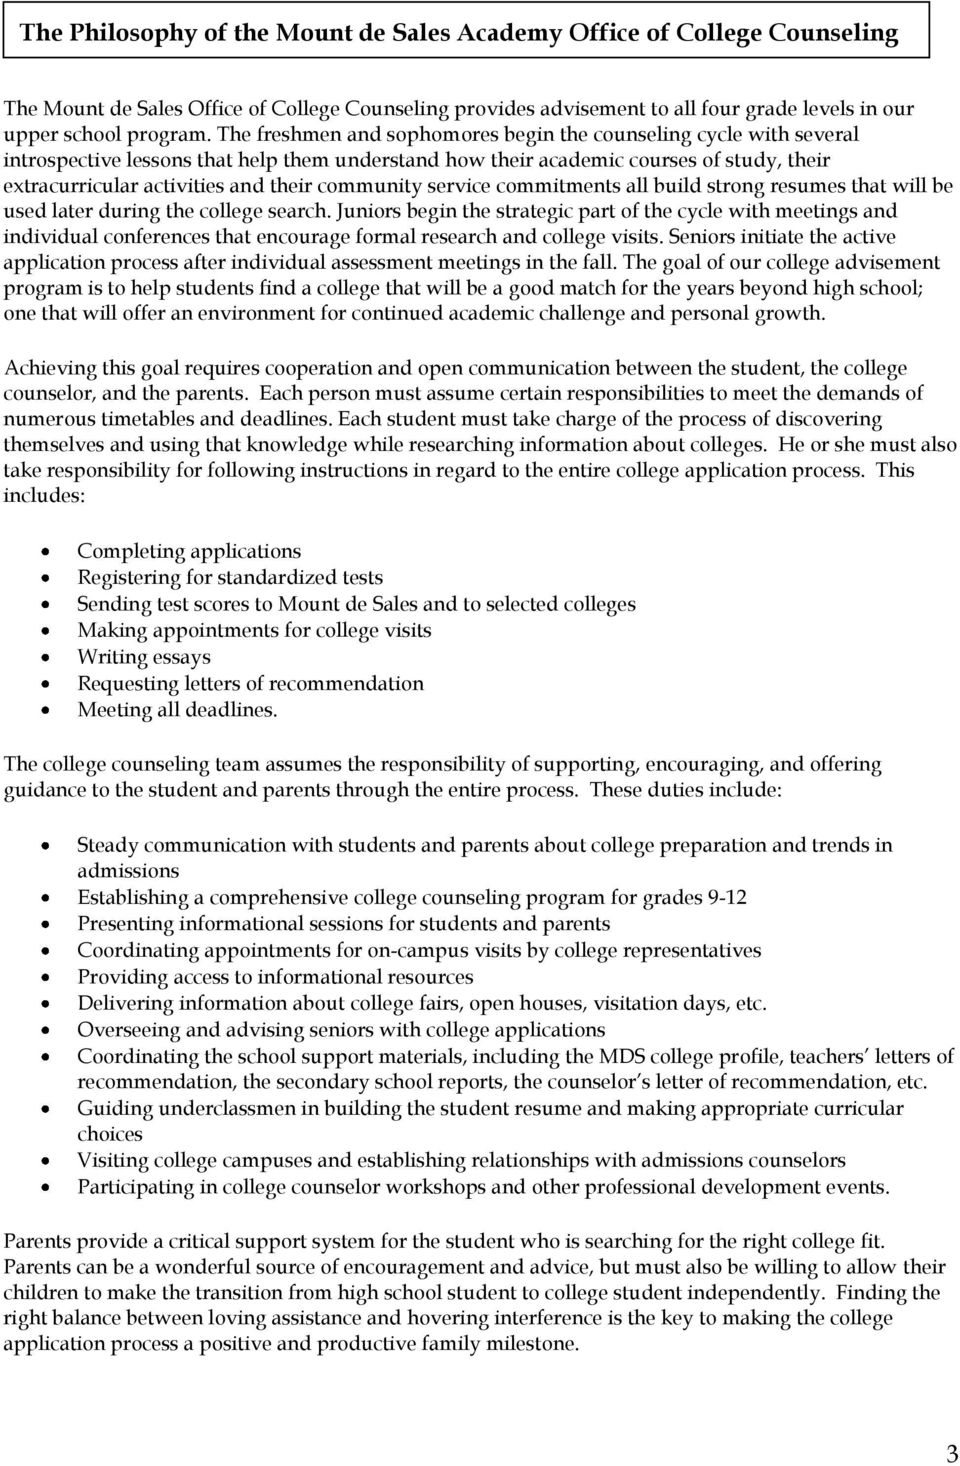 community service commitments all build strong resumes that will be used later during the college search.